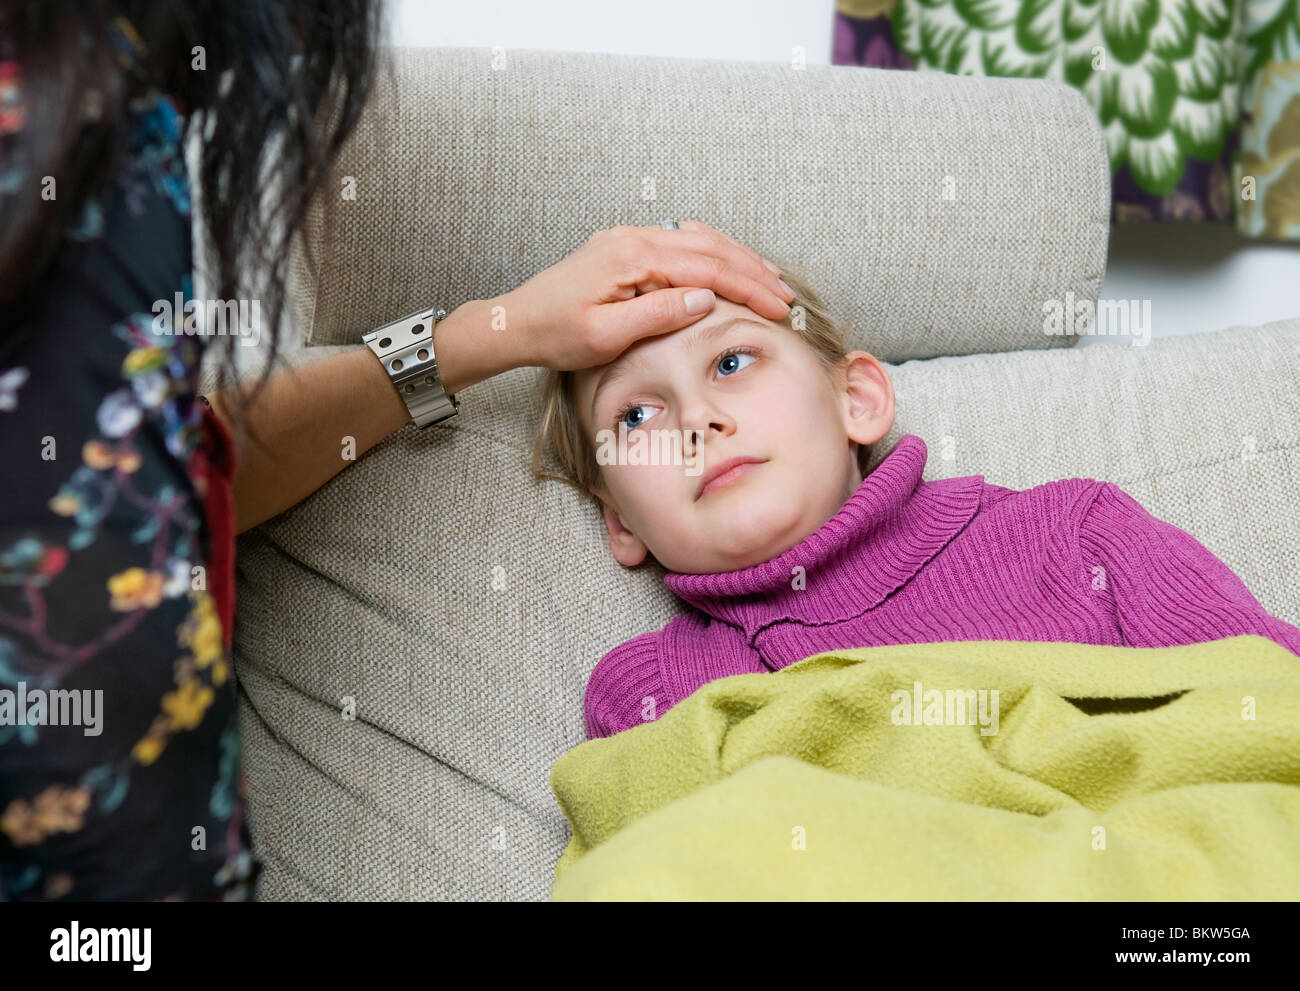 Taking care of sick child - Stock Image